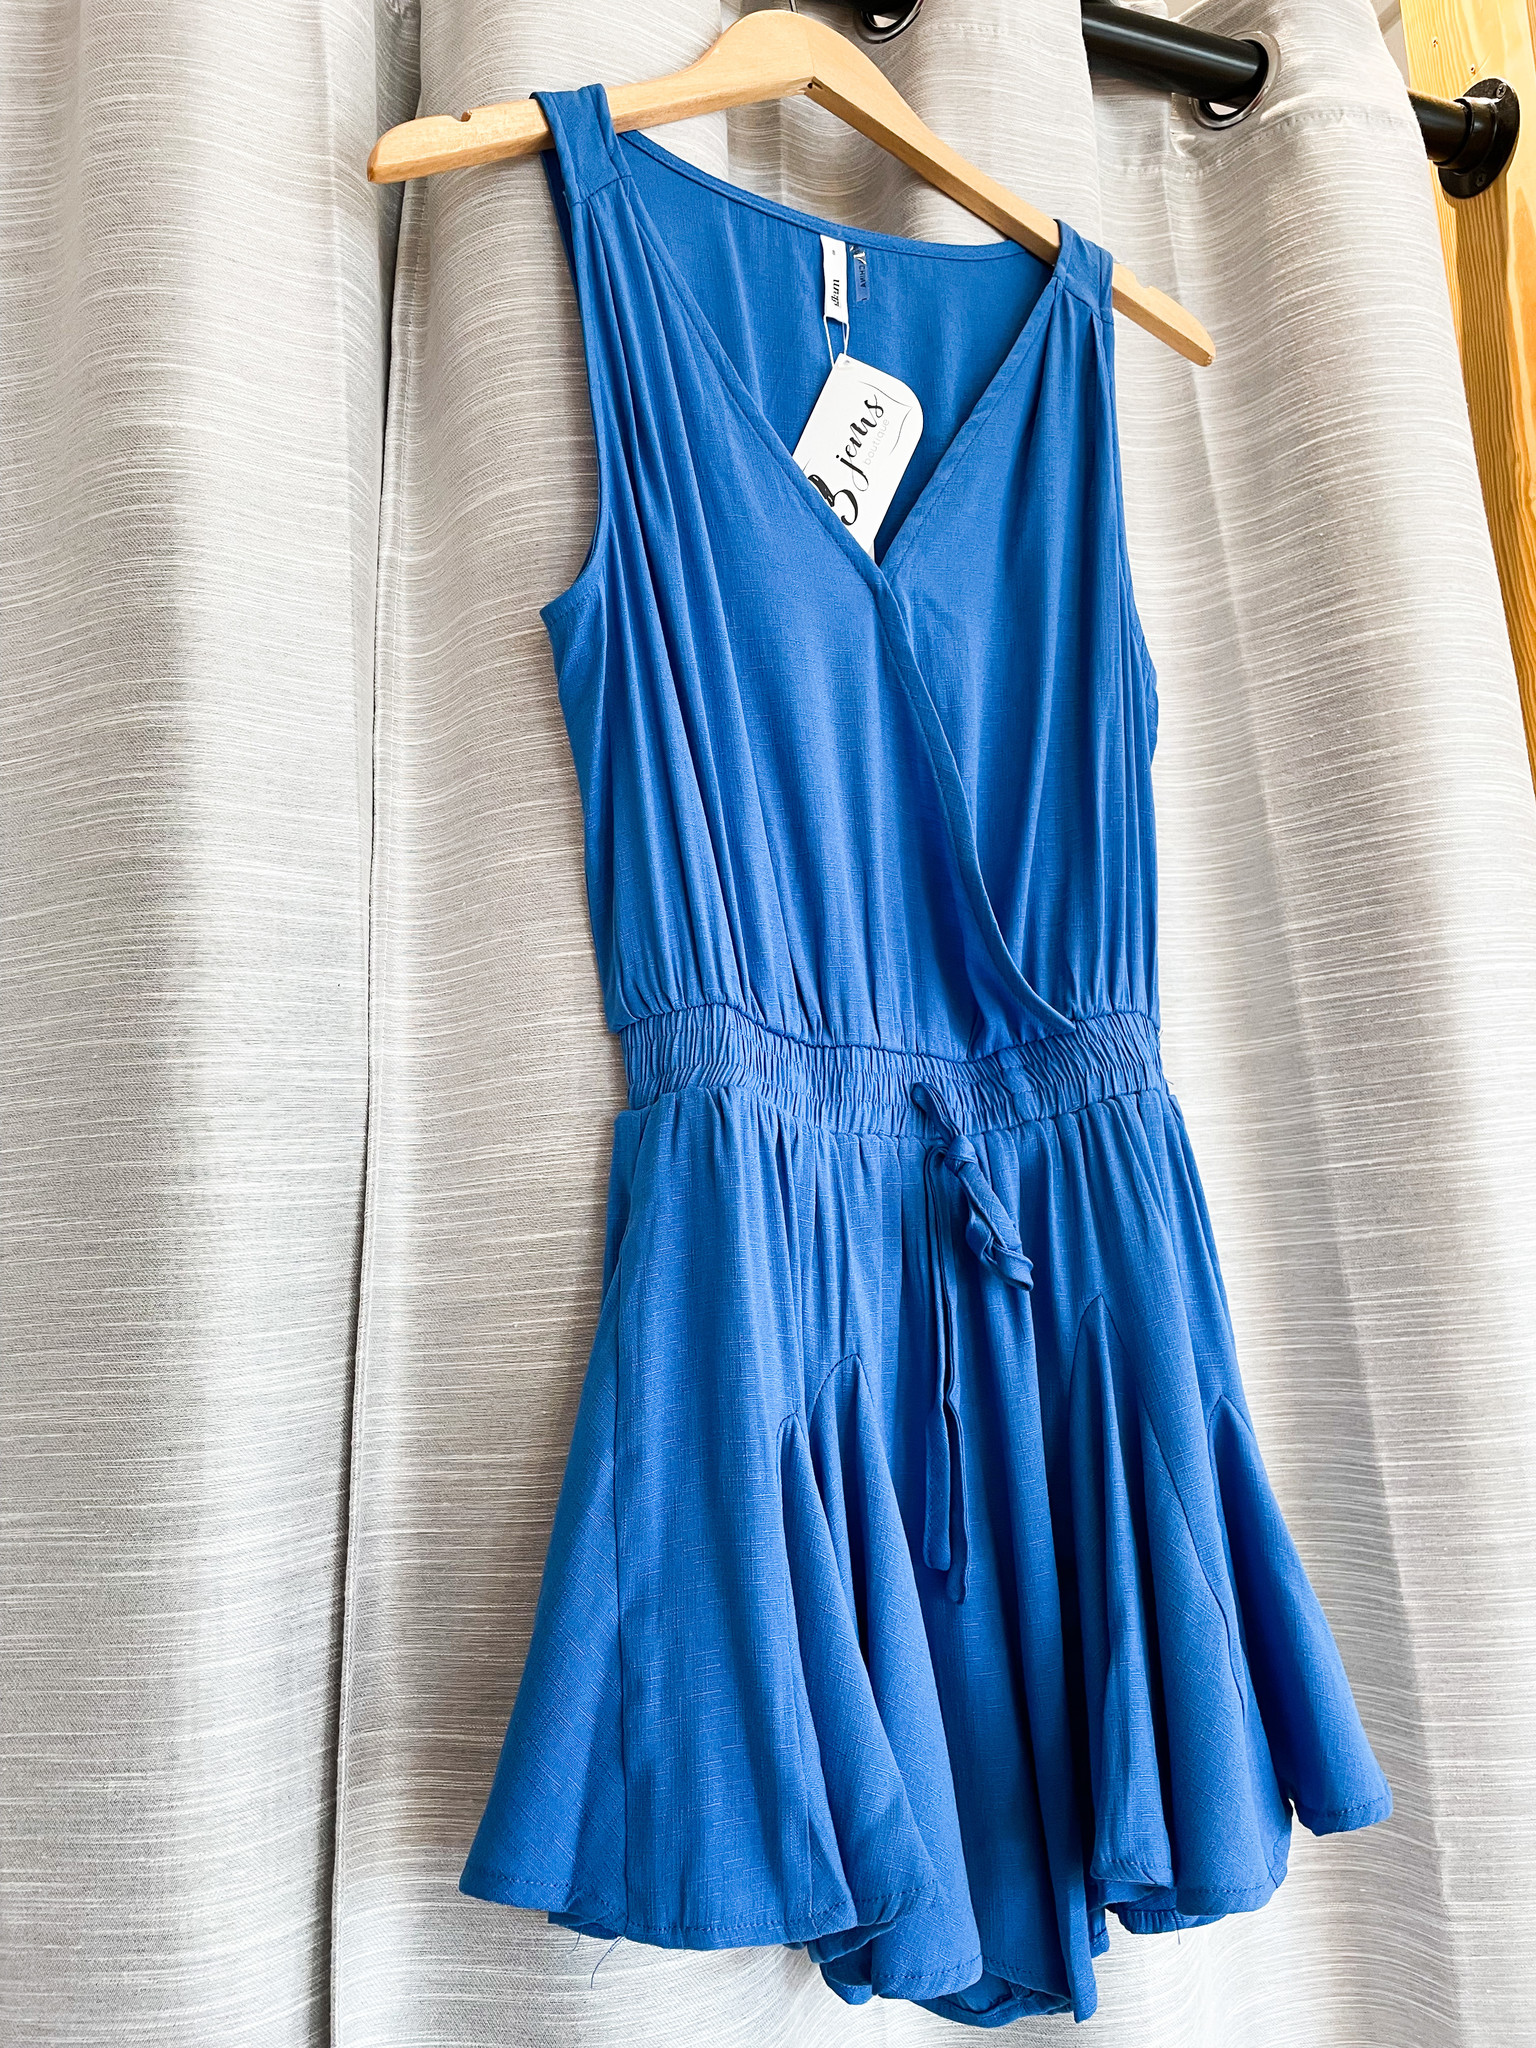 Royal Blue Sleeveless Romper w/ Front Tie